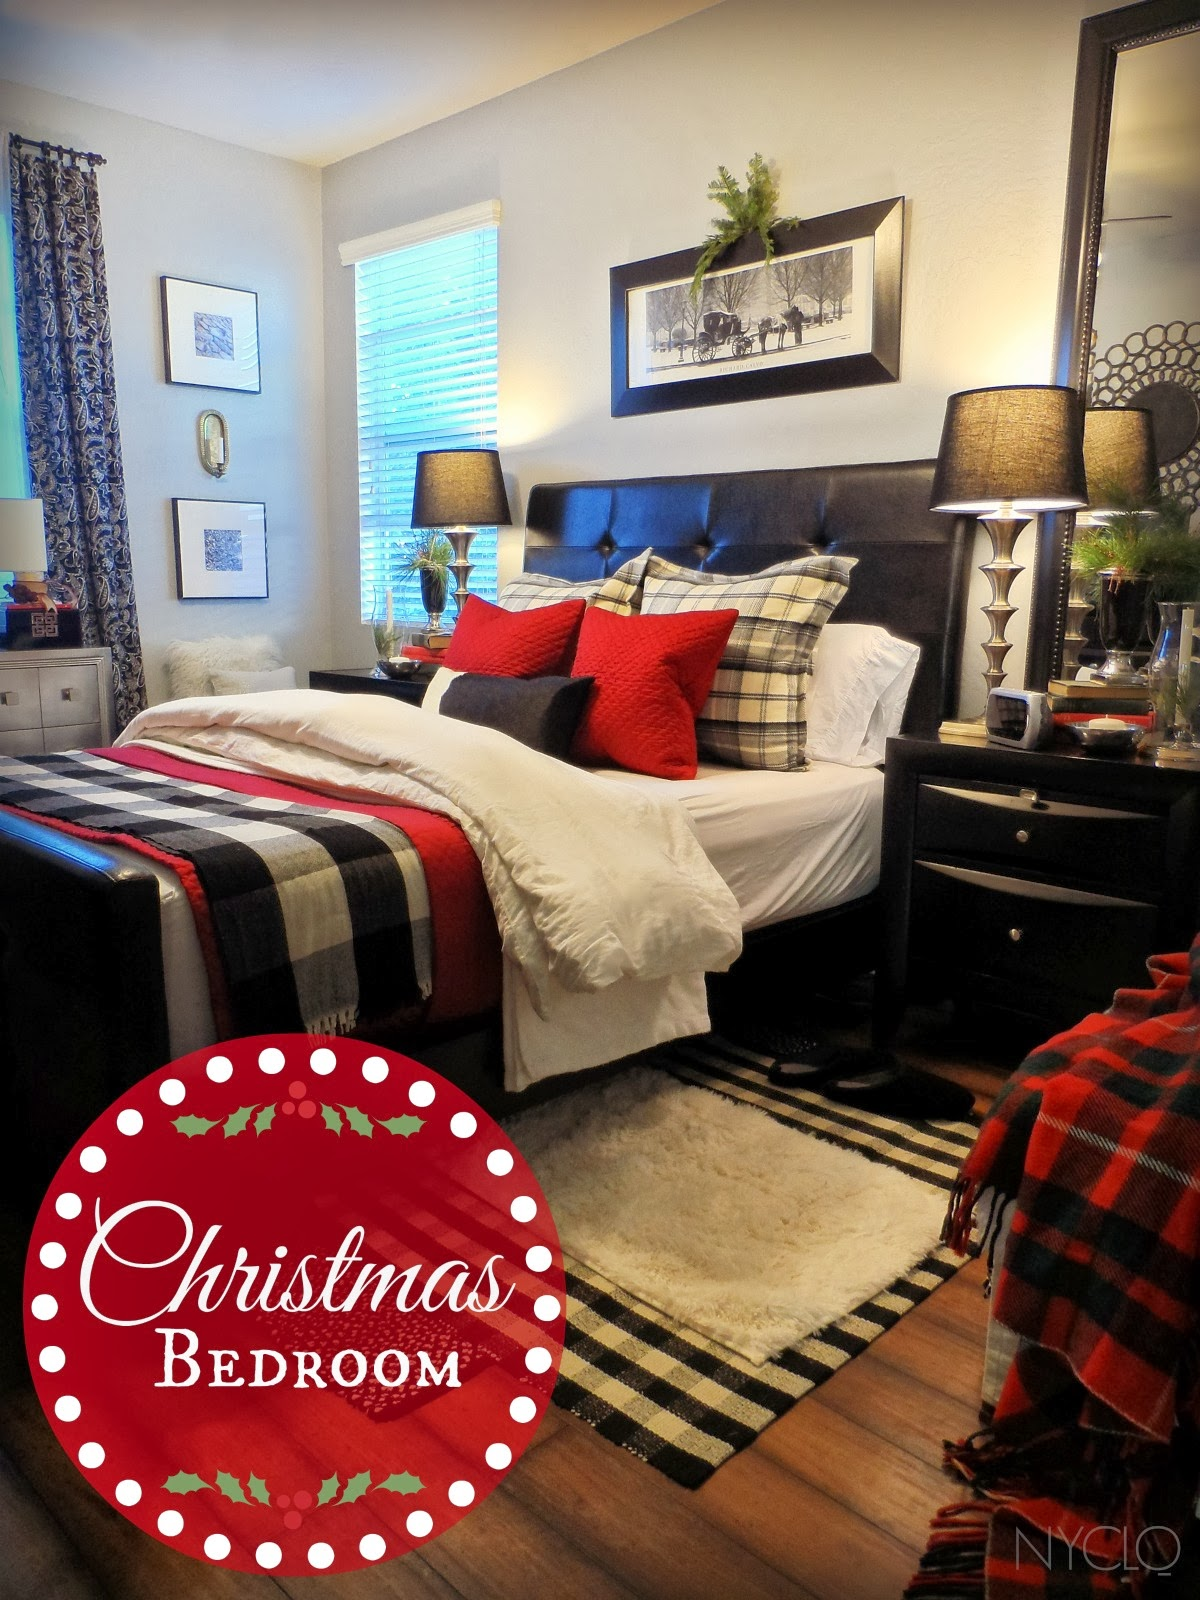 In The Bedroom Or The Couch: FOCAL POINT STYLING: CHRISTMAS BEDROOM WITH LAYERS OF